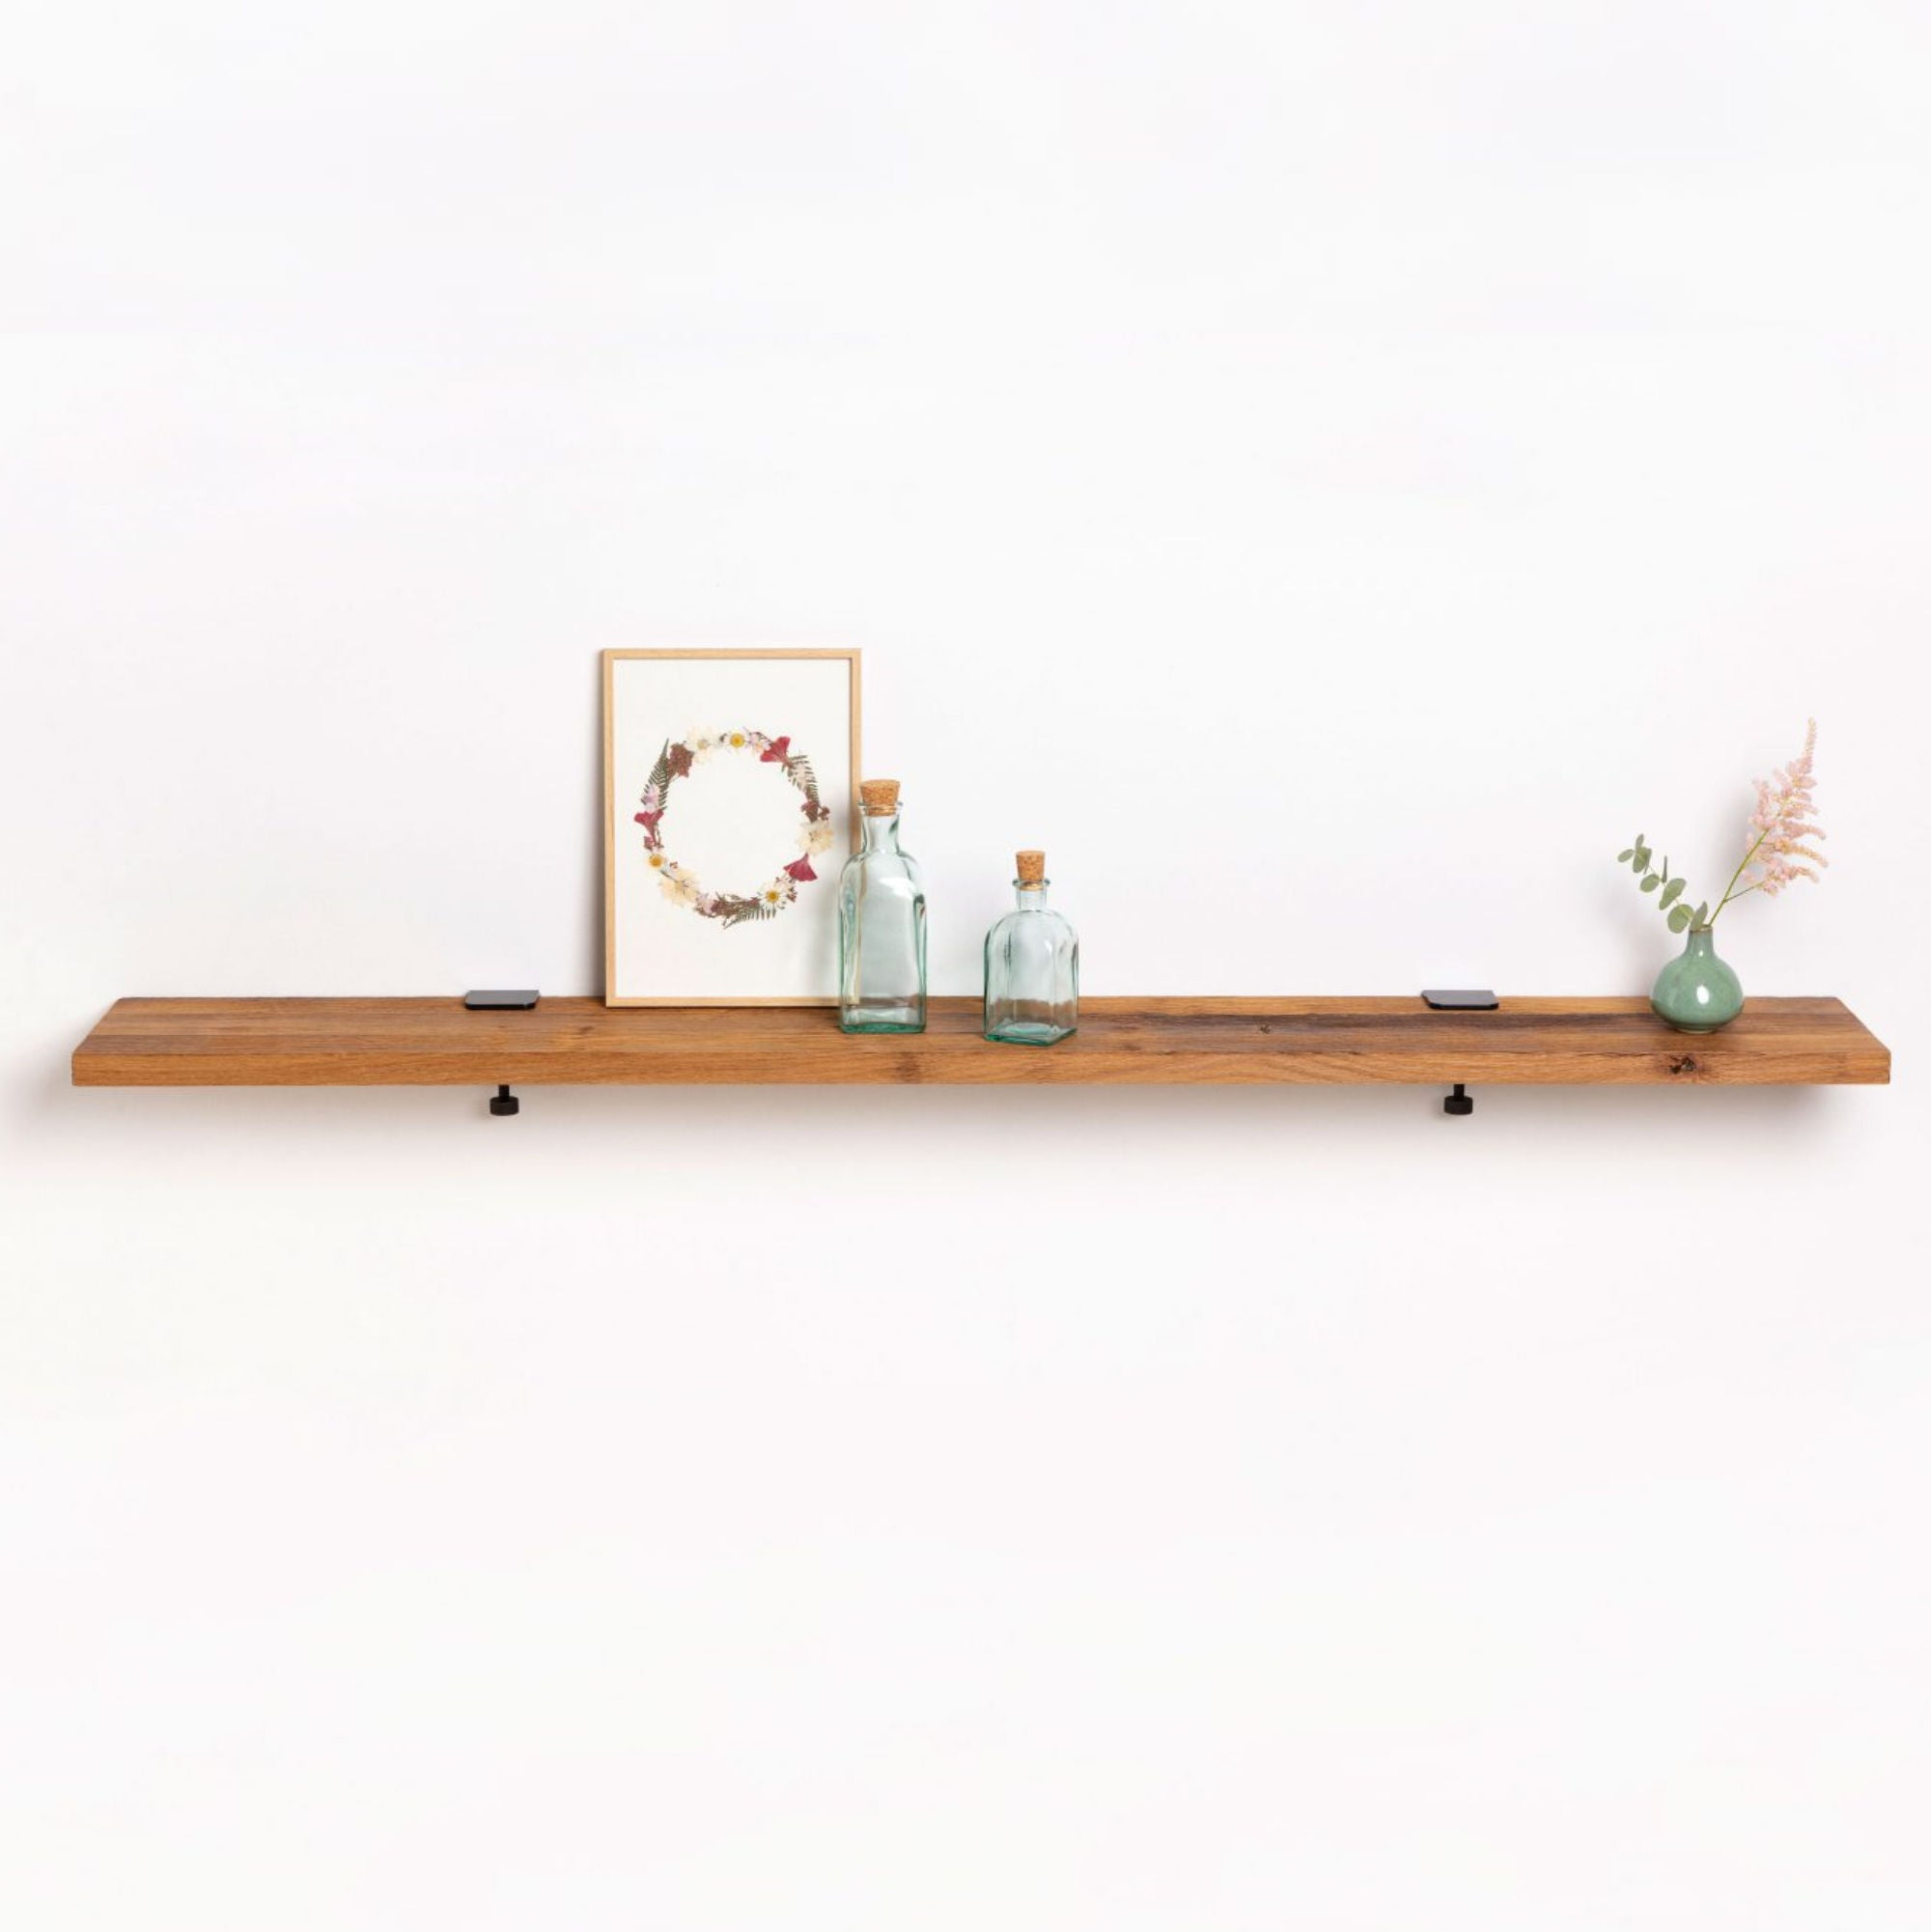 Tiptoe Reclaimed wood shelf, 150 * 20cm